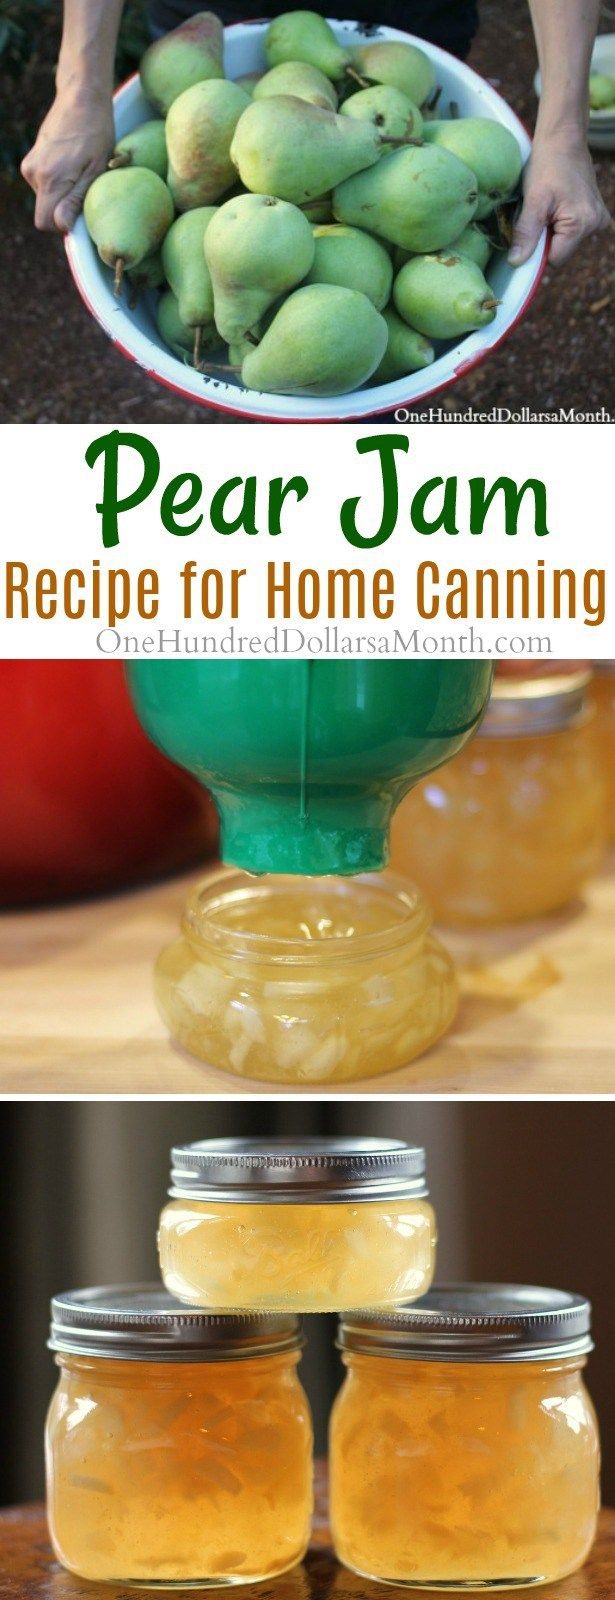 How to Make Pear Jam, Pear Jam Recipe, Pear Canning Recipes, Canning Pears, Jam Recipes